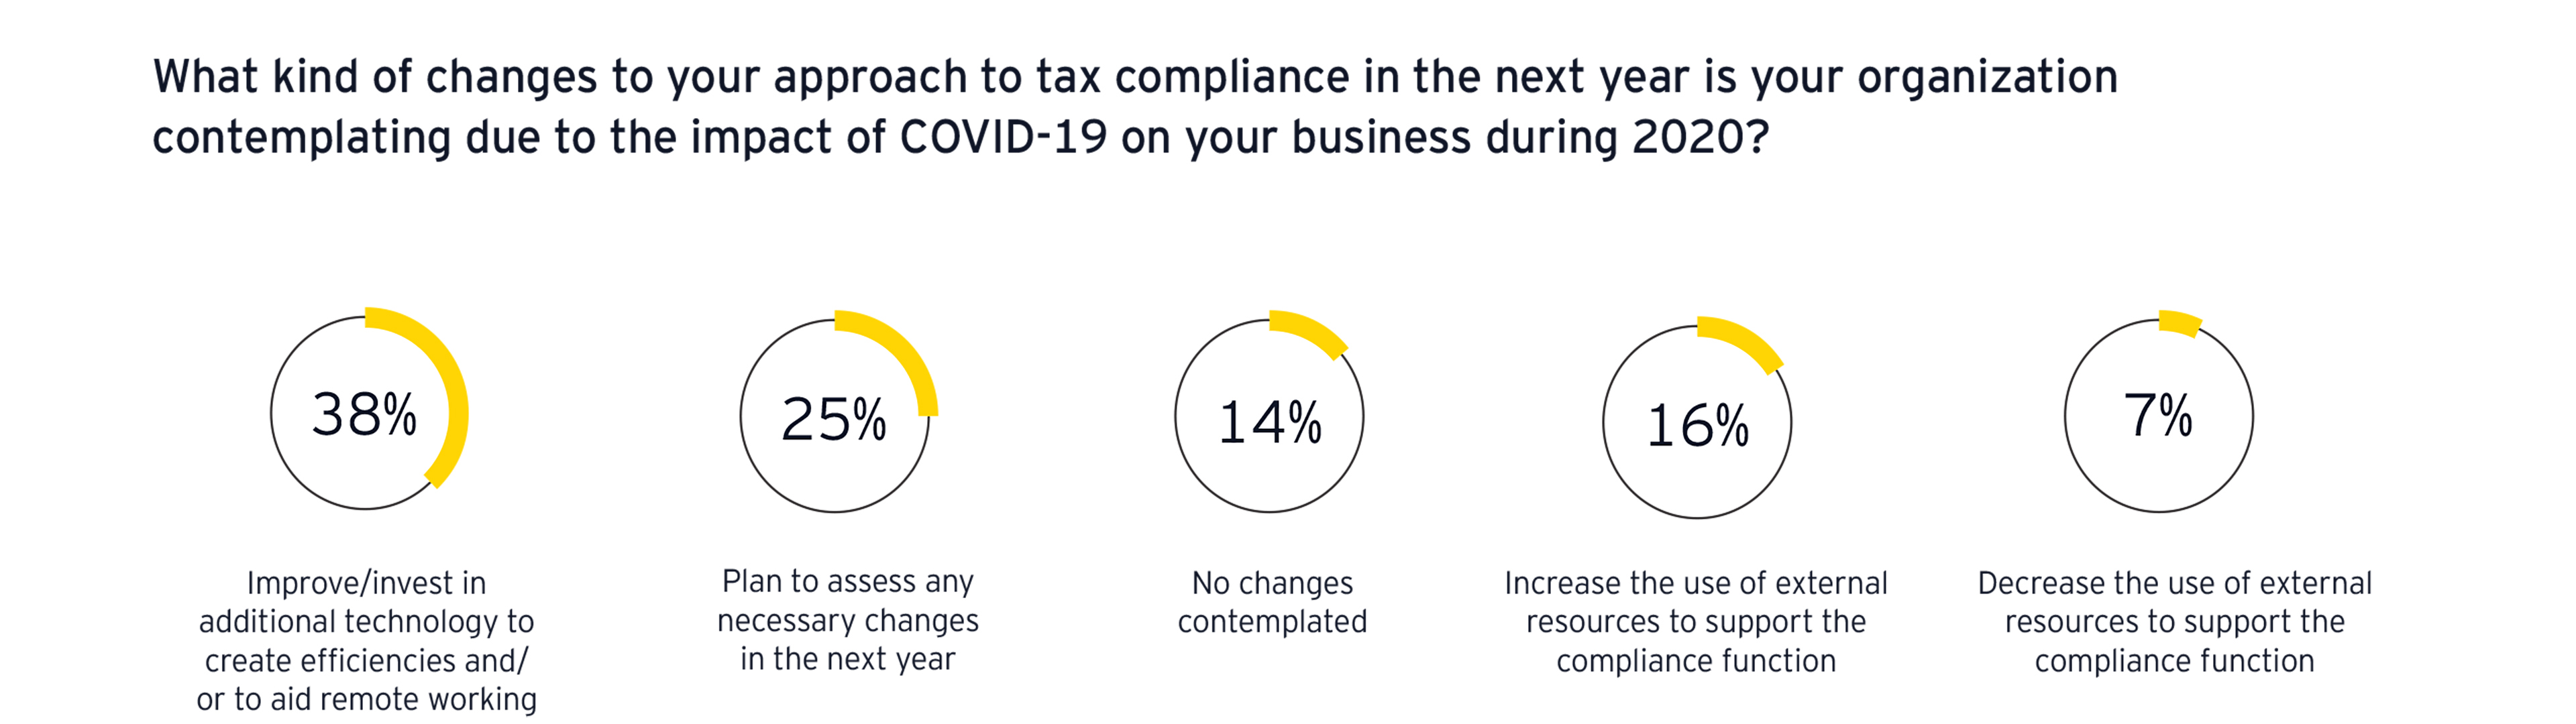 ey-changes-to-your-approach-to-tax-compliance-6